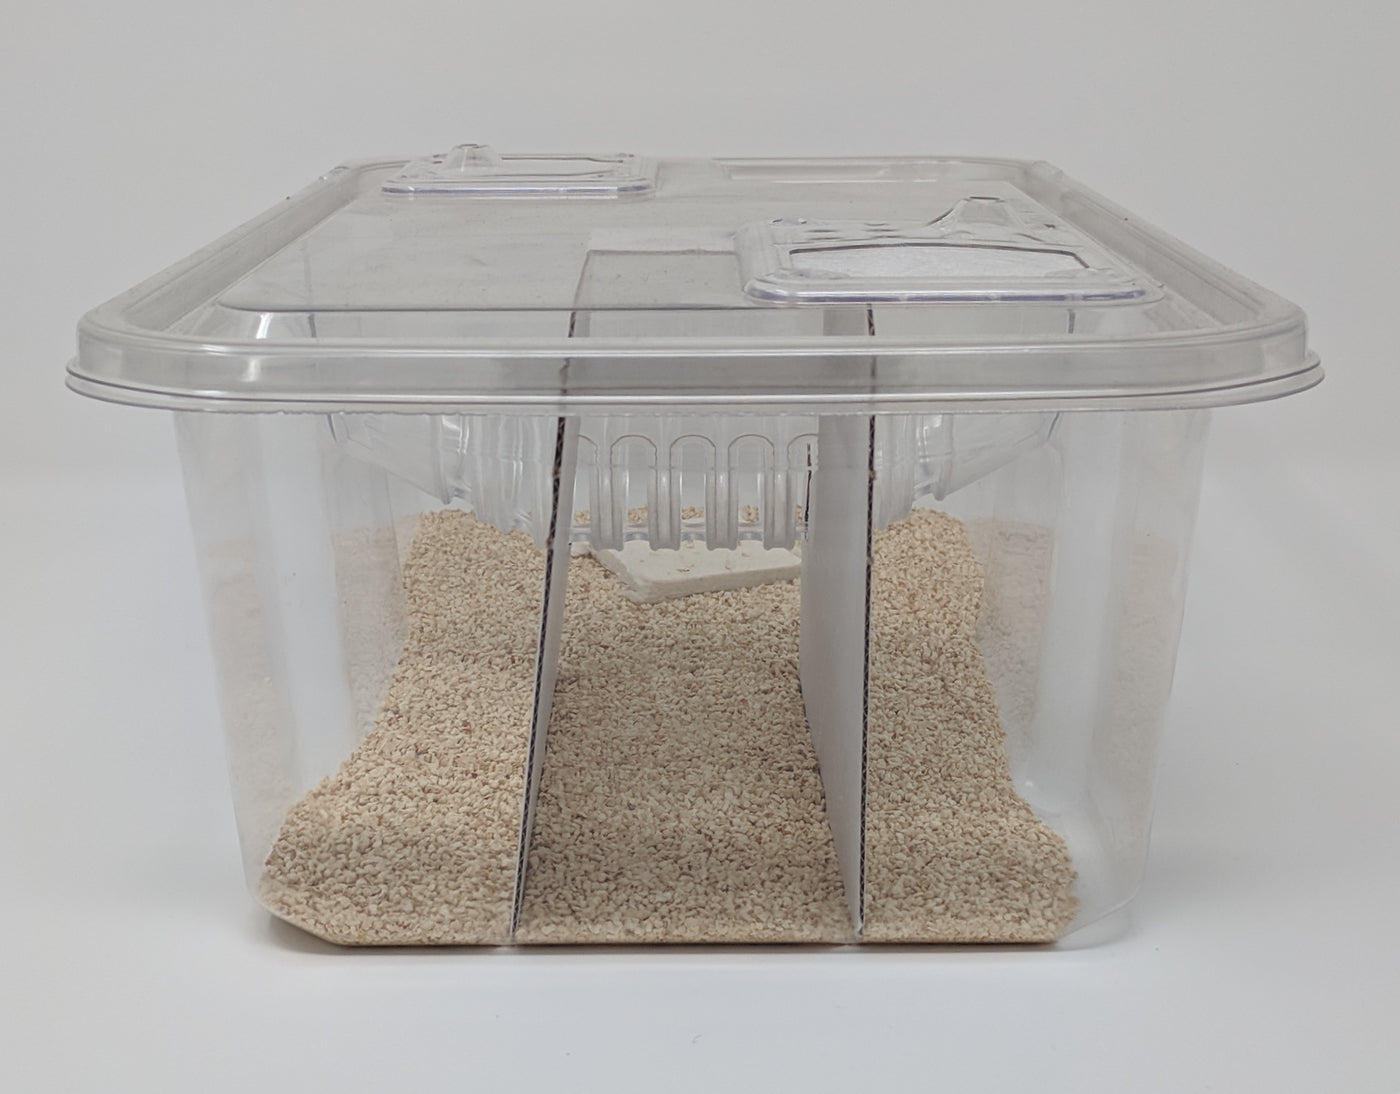 Mouse Cubby for Innovive (300 Non-Irradiated Dividers)